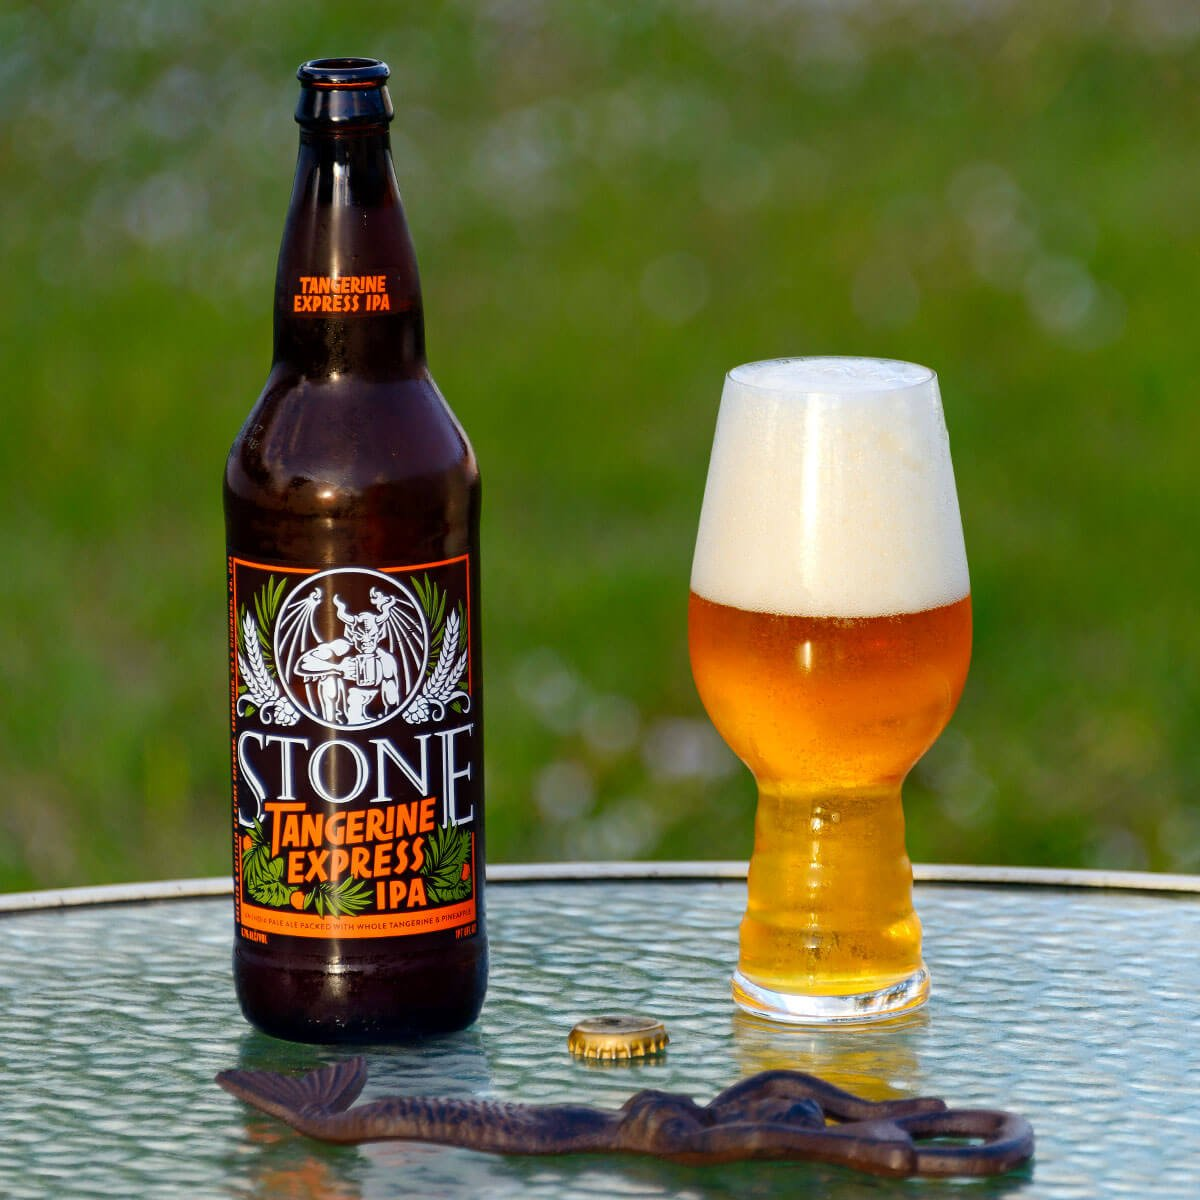 Stone Tangerine Express IPA, an American IPA by Stone Brewing